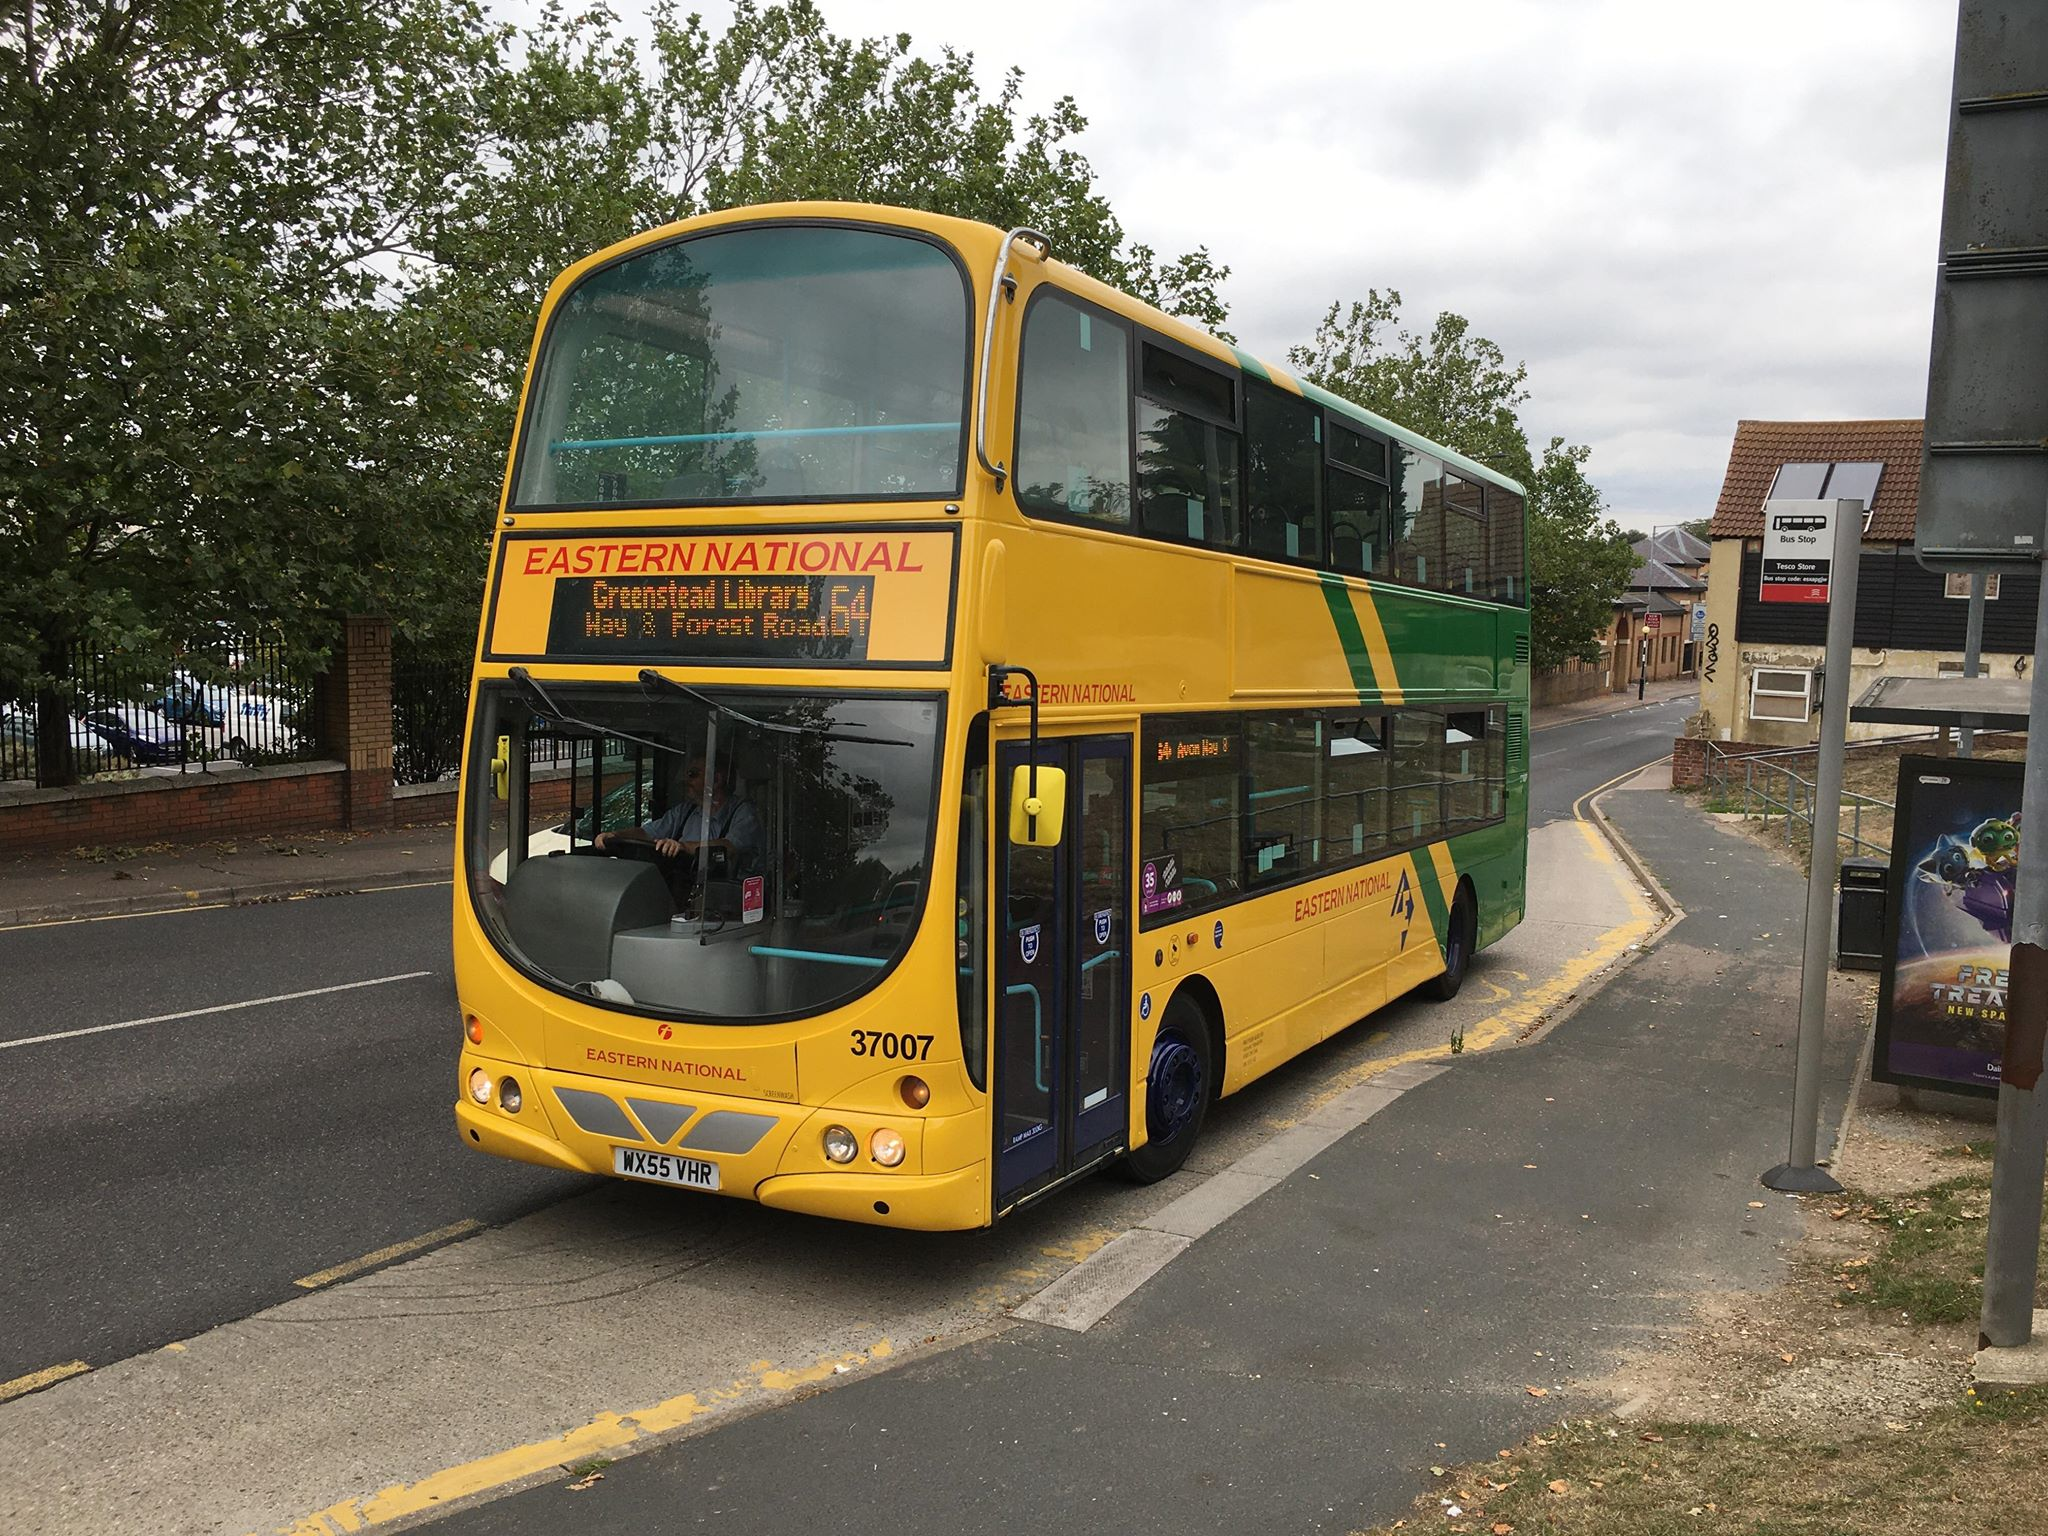 WX55VHR 37007 FE EN HERITAGE LIVERY 64A (GREENSTEAD RD, CR) 6-8-20 (D PRETTY)